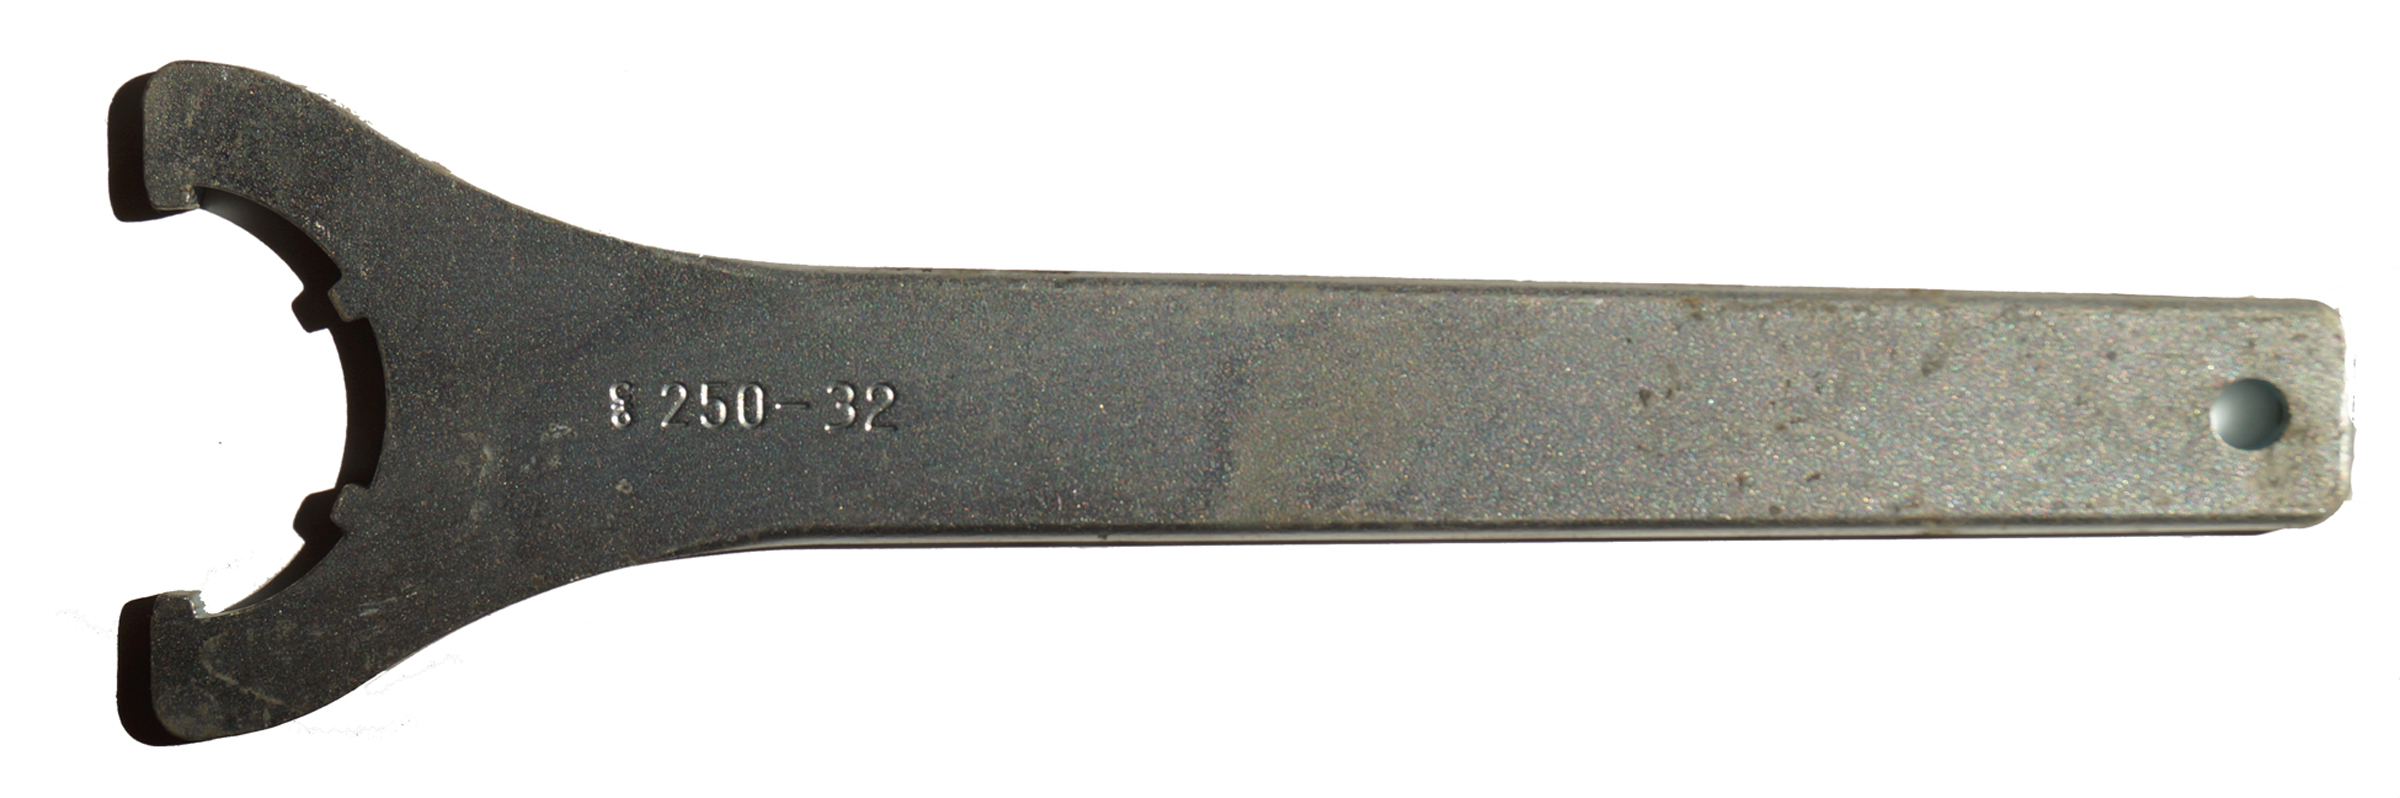 ER32 Collet Chuck Wrench 250-32